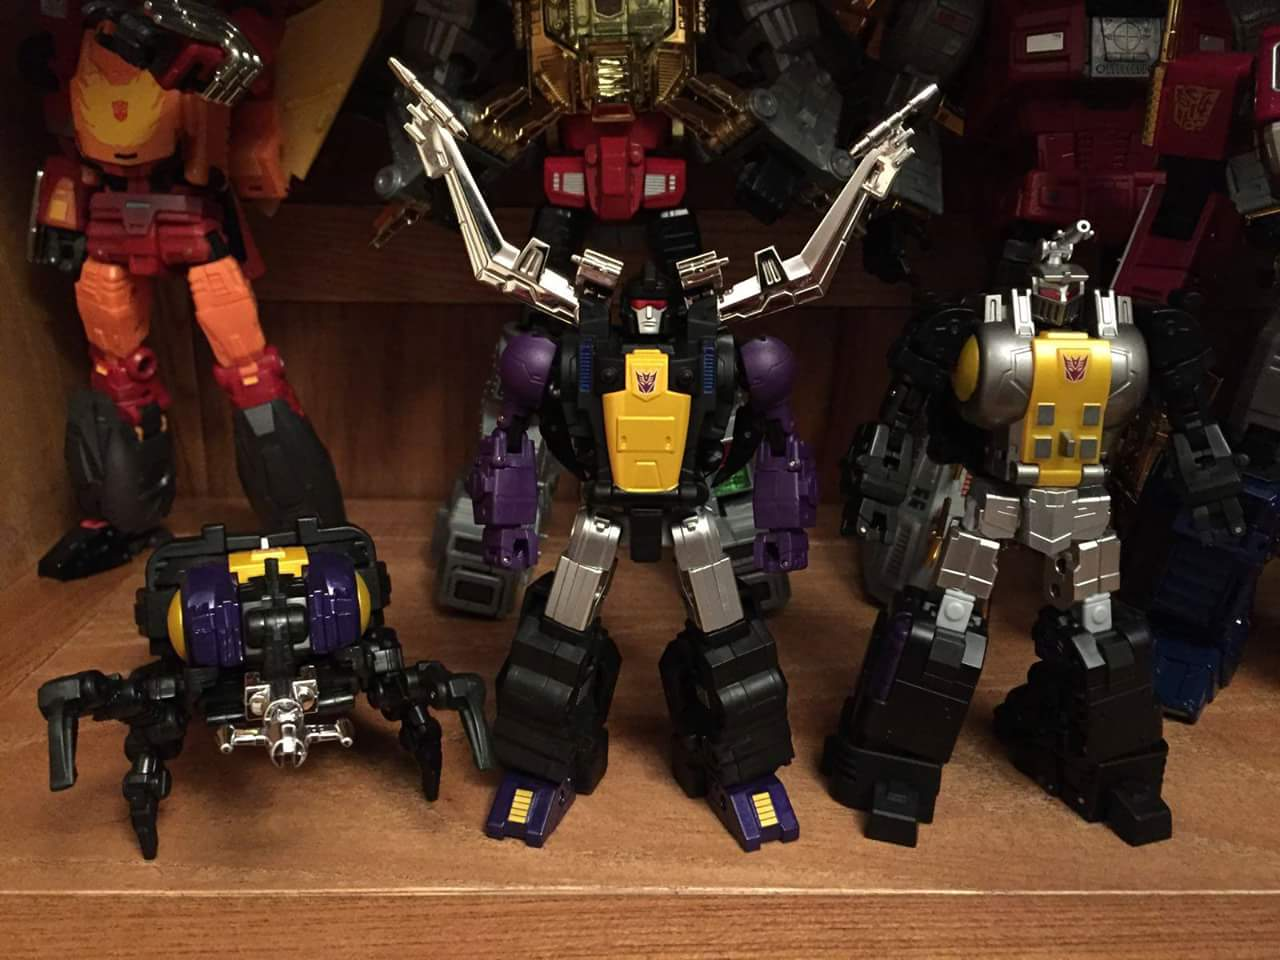 [Fanstoys] Produit Tiers - Jouet FT-12 Grenadier / FT-13 Mercenary / FT-14 Forager - aka Insecticons - Page 3 UXwTgQfk